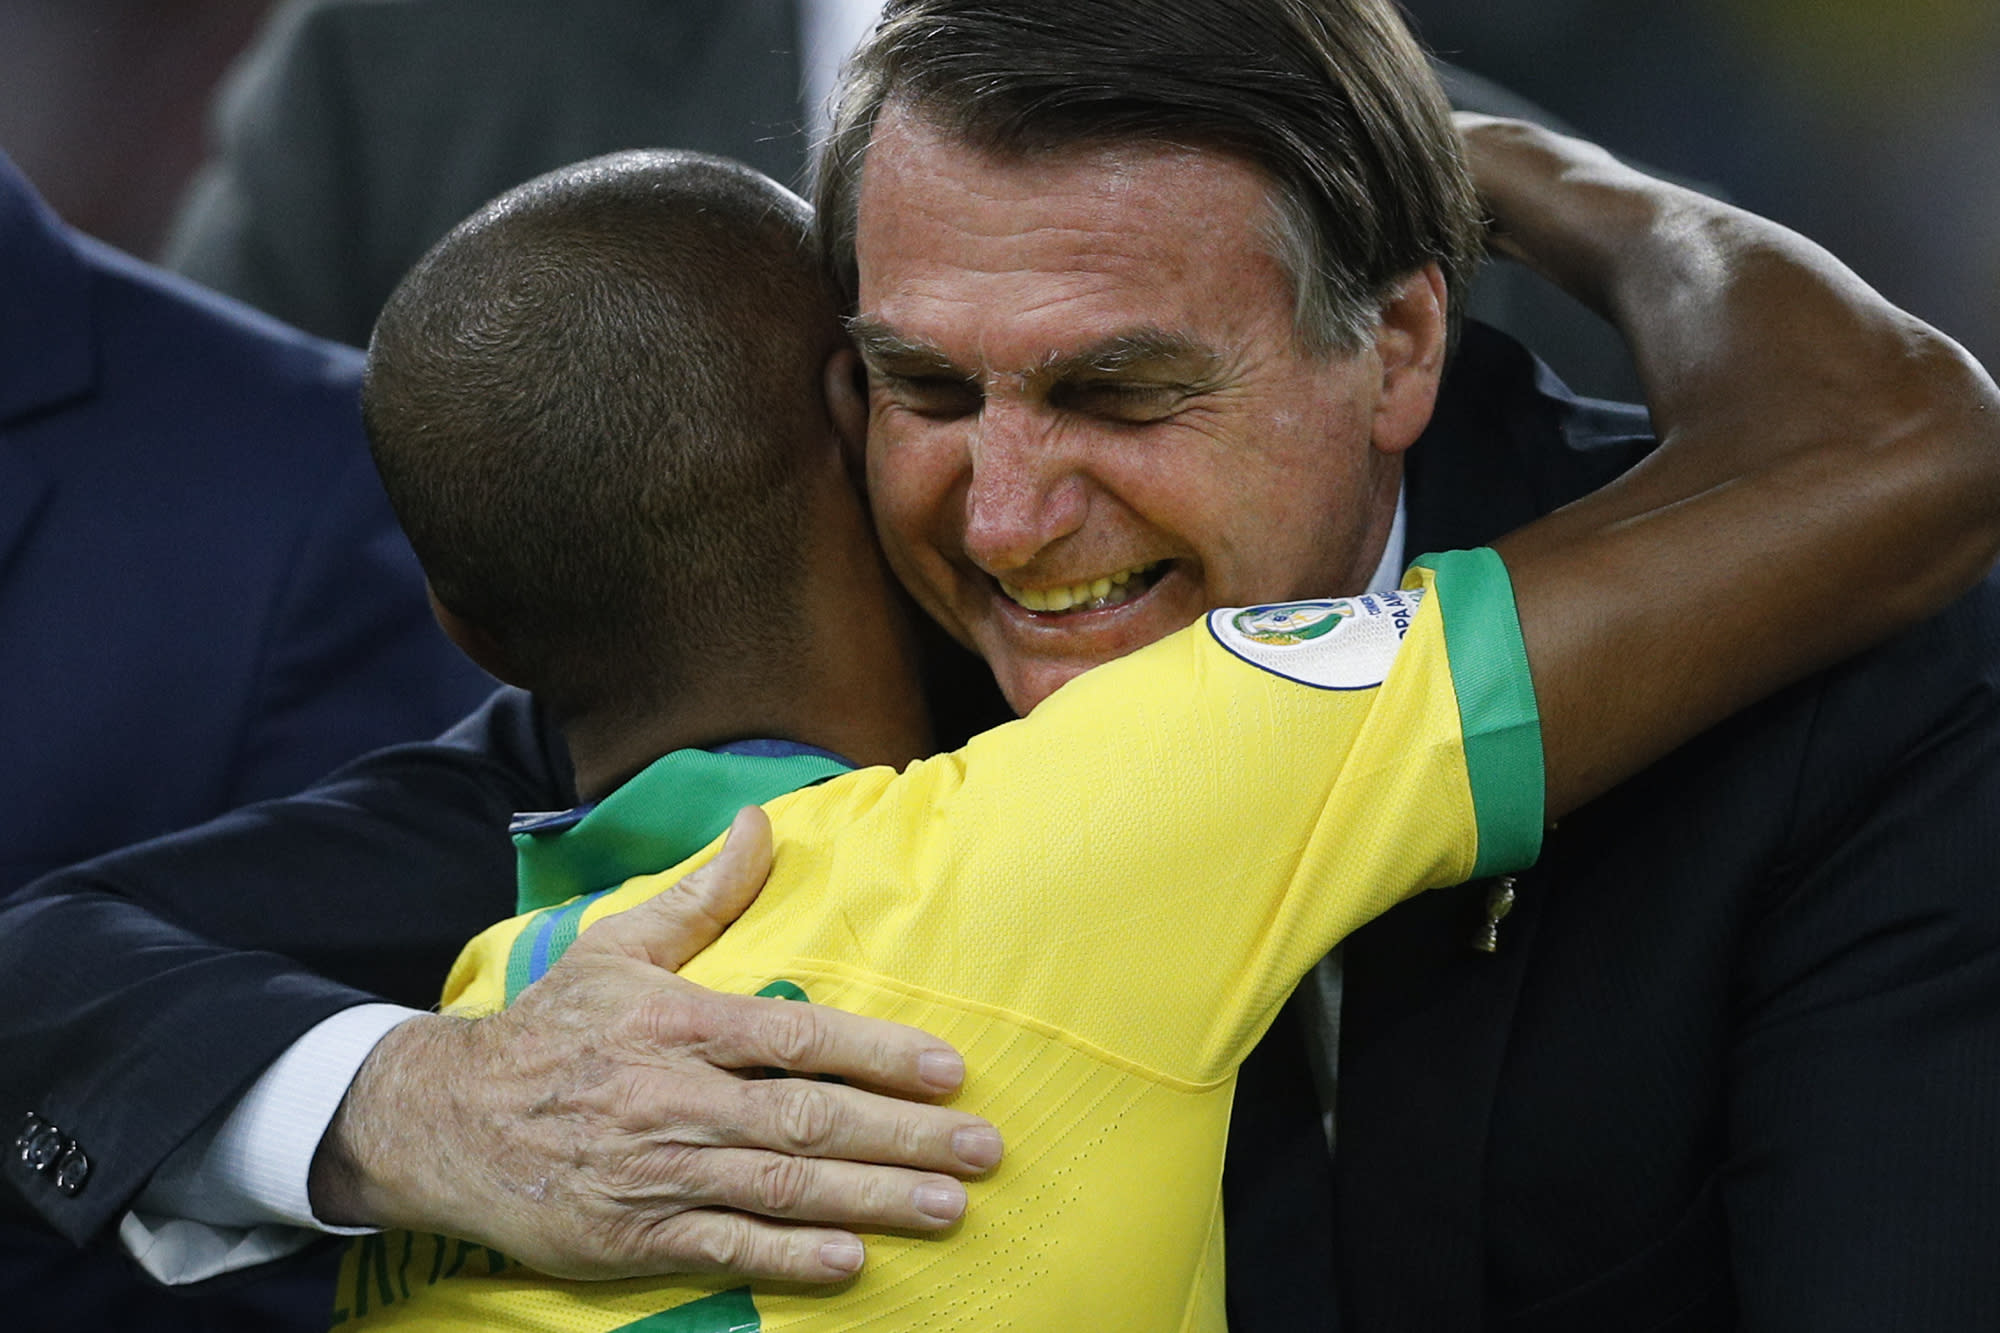 Brazil's President Jair Bolsonaro embraces Brazil's Fernandinho after he won the final soccer match of the Copa America against Peru at the Maracana stadium in Rio de Janeiro, Brazil, Sunday, July 7, 2019. (AP Photo/Victor R. Caivano)